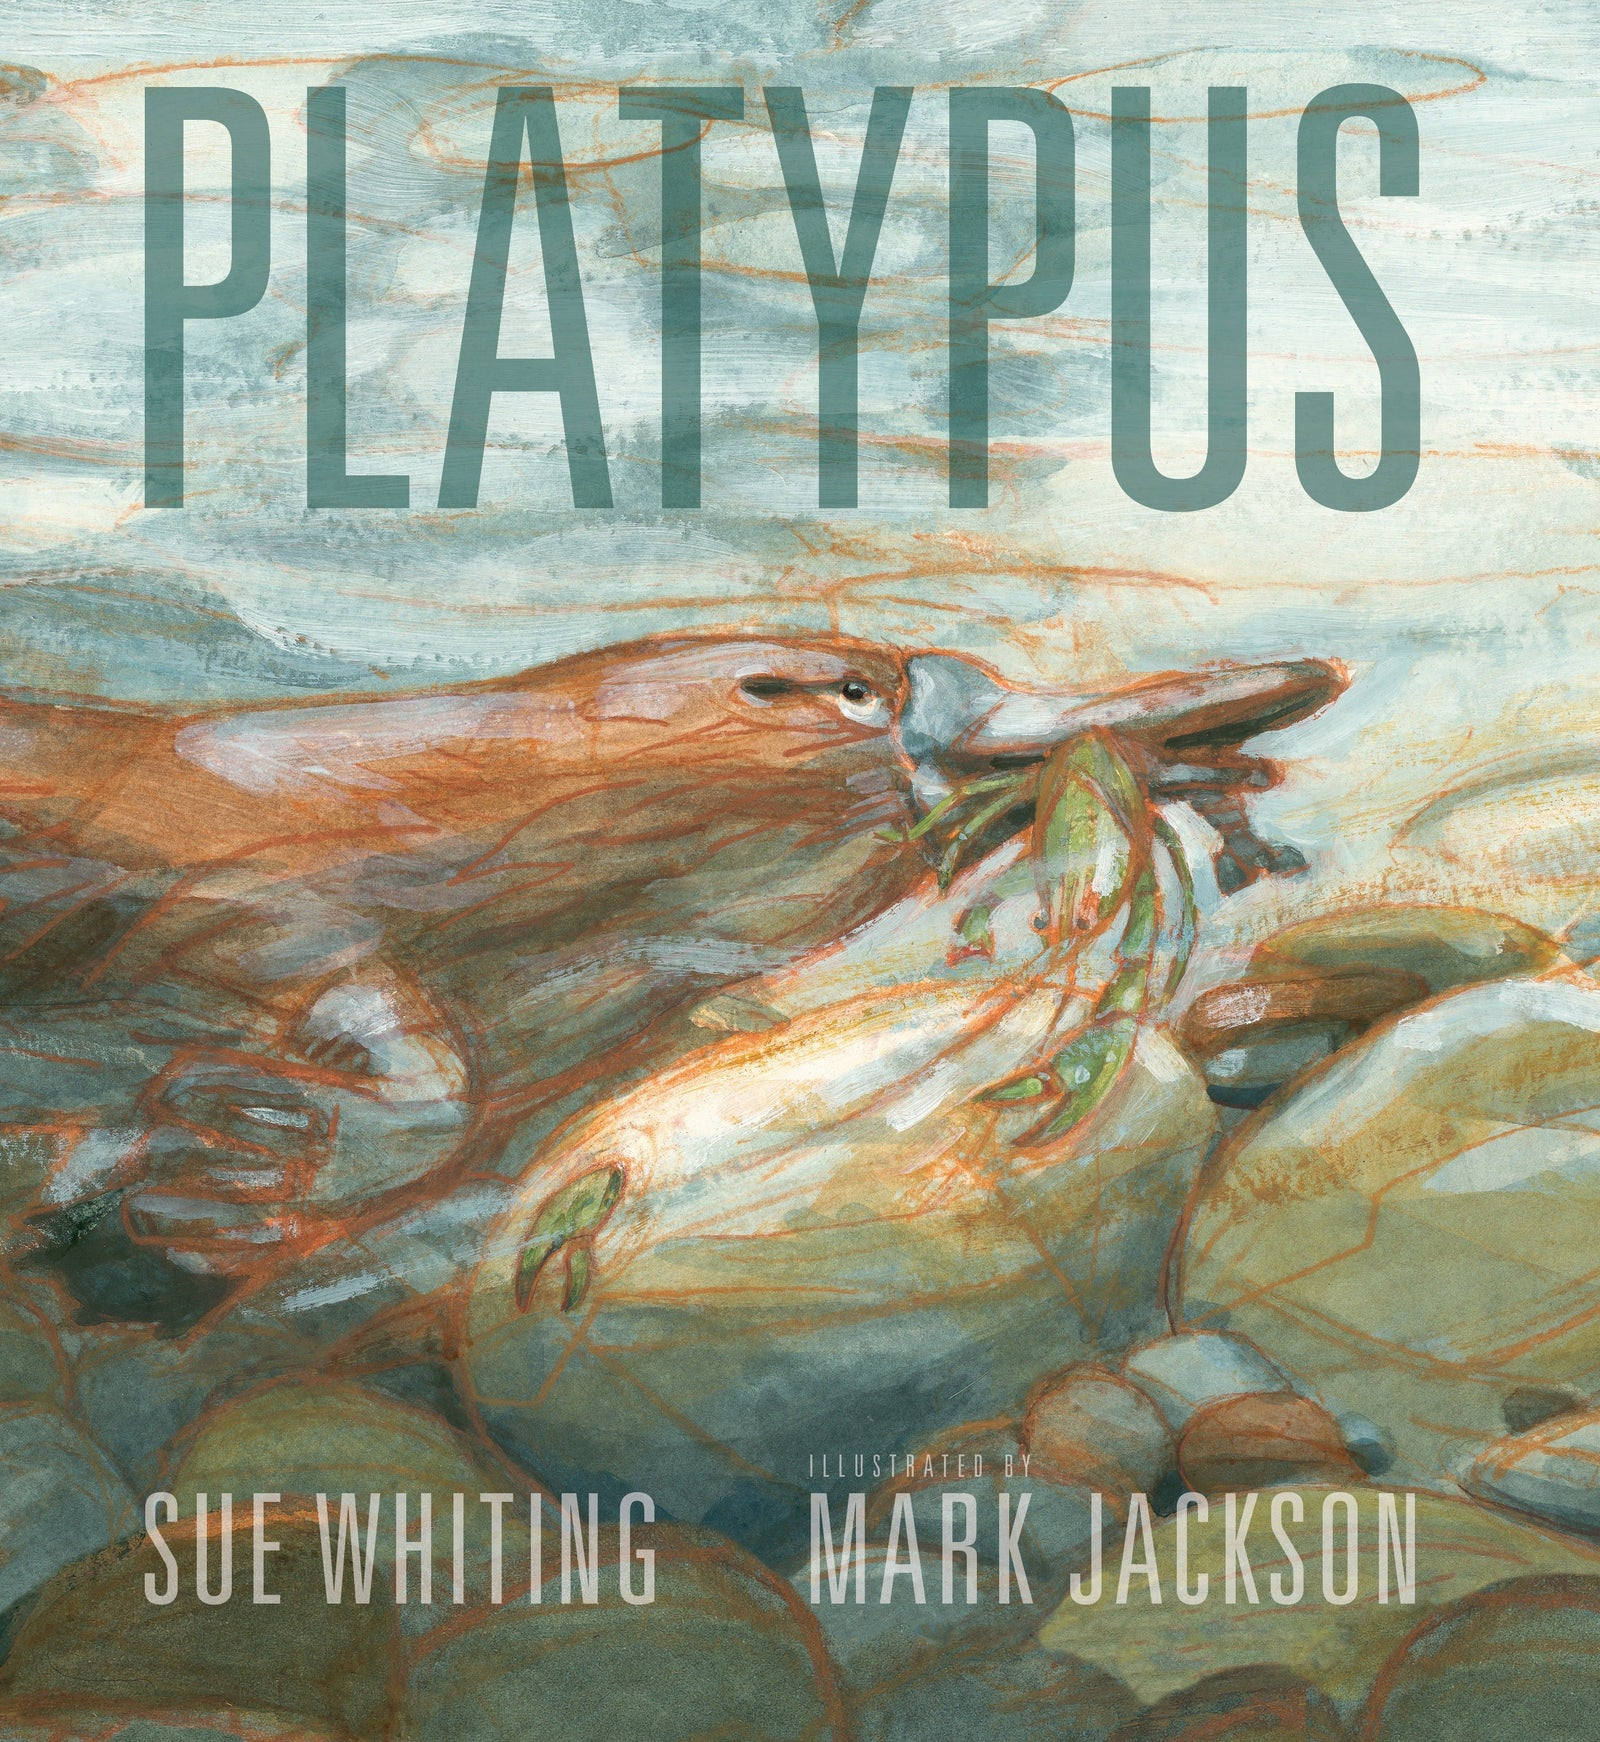 Book - Platypus, illustrated, emotional